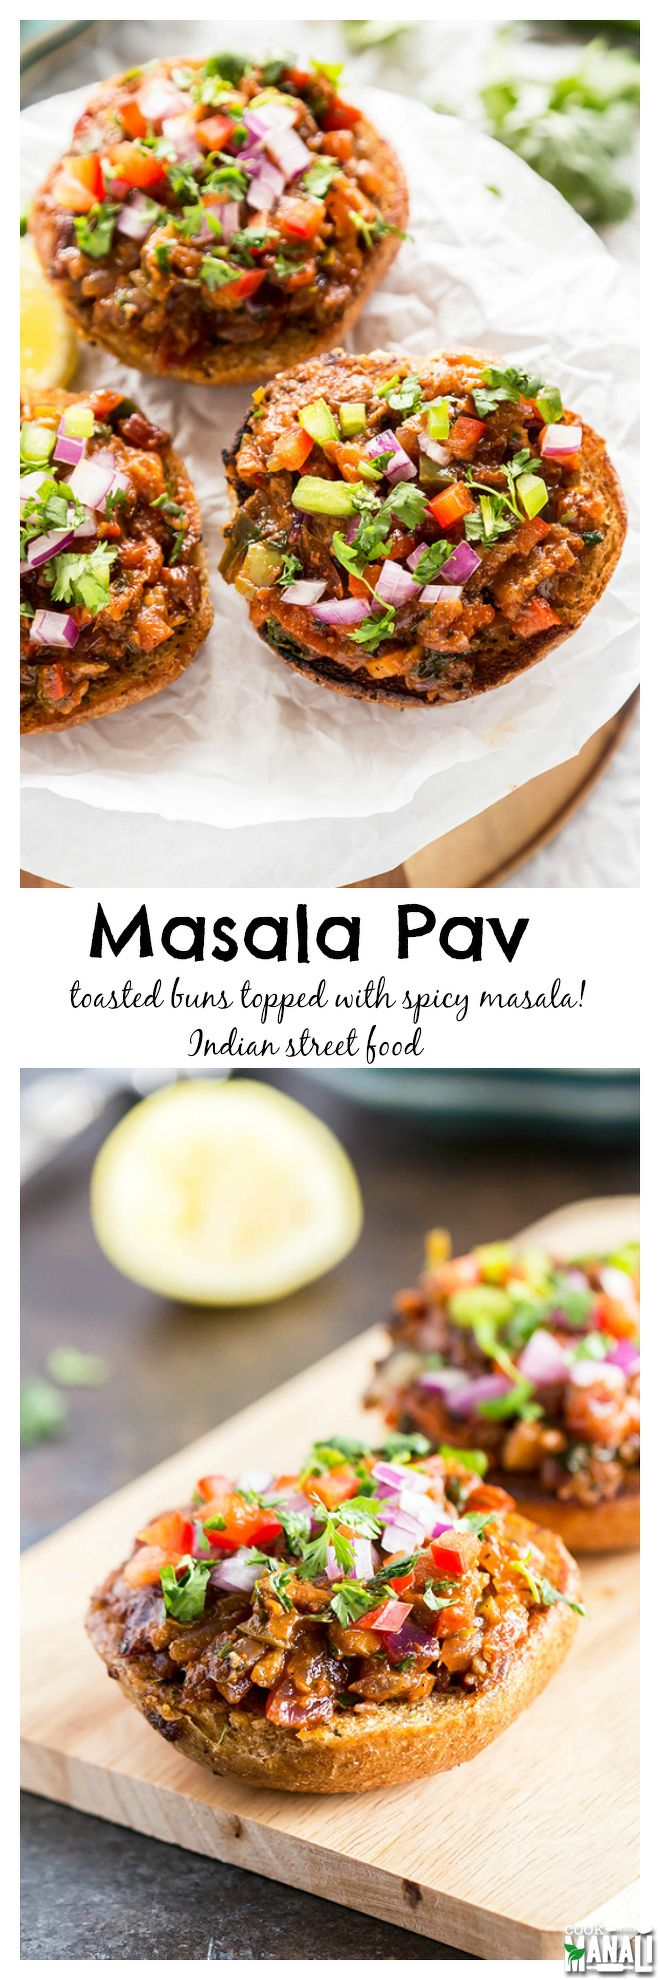 40 best indian street food images on pinterest indian food recipes masala pav is popular street food from mumbai toasted buns are topped with a spicy forumfinder Images